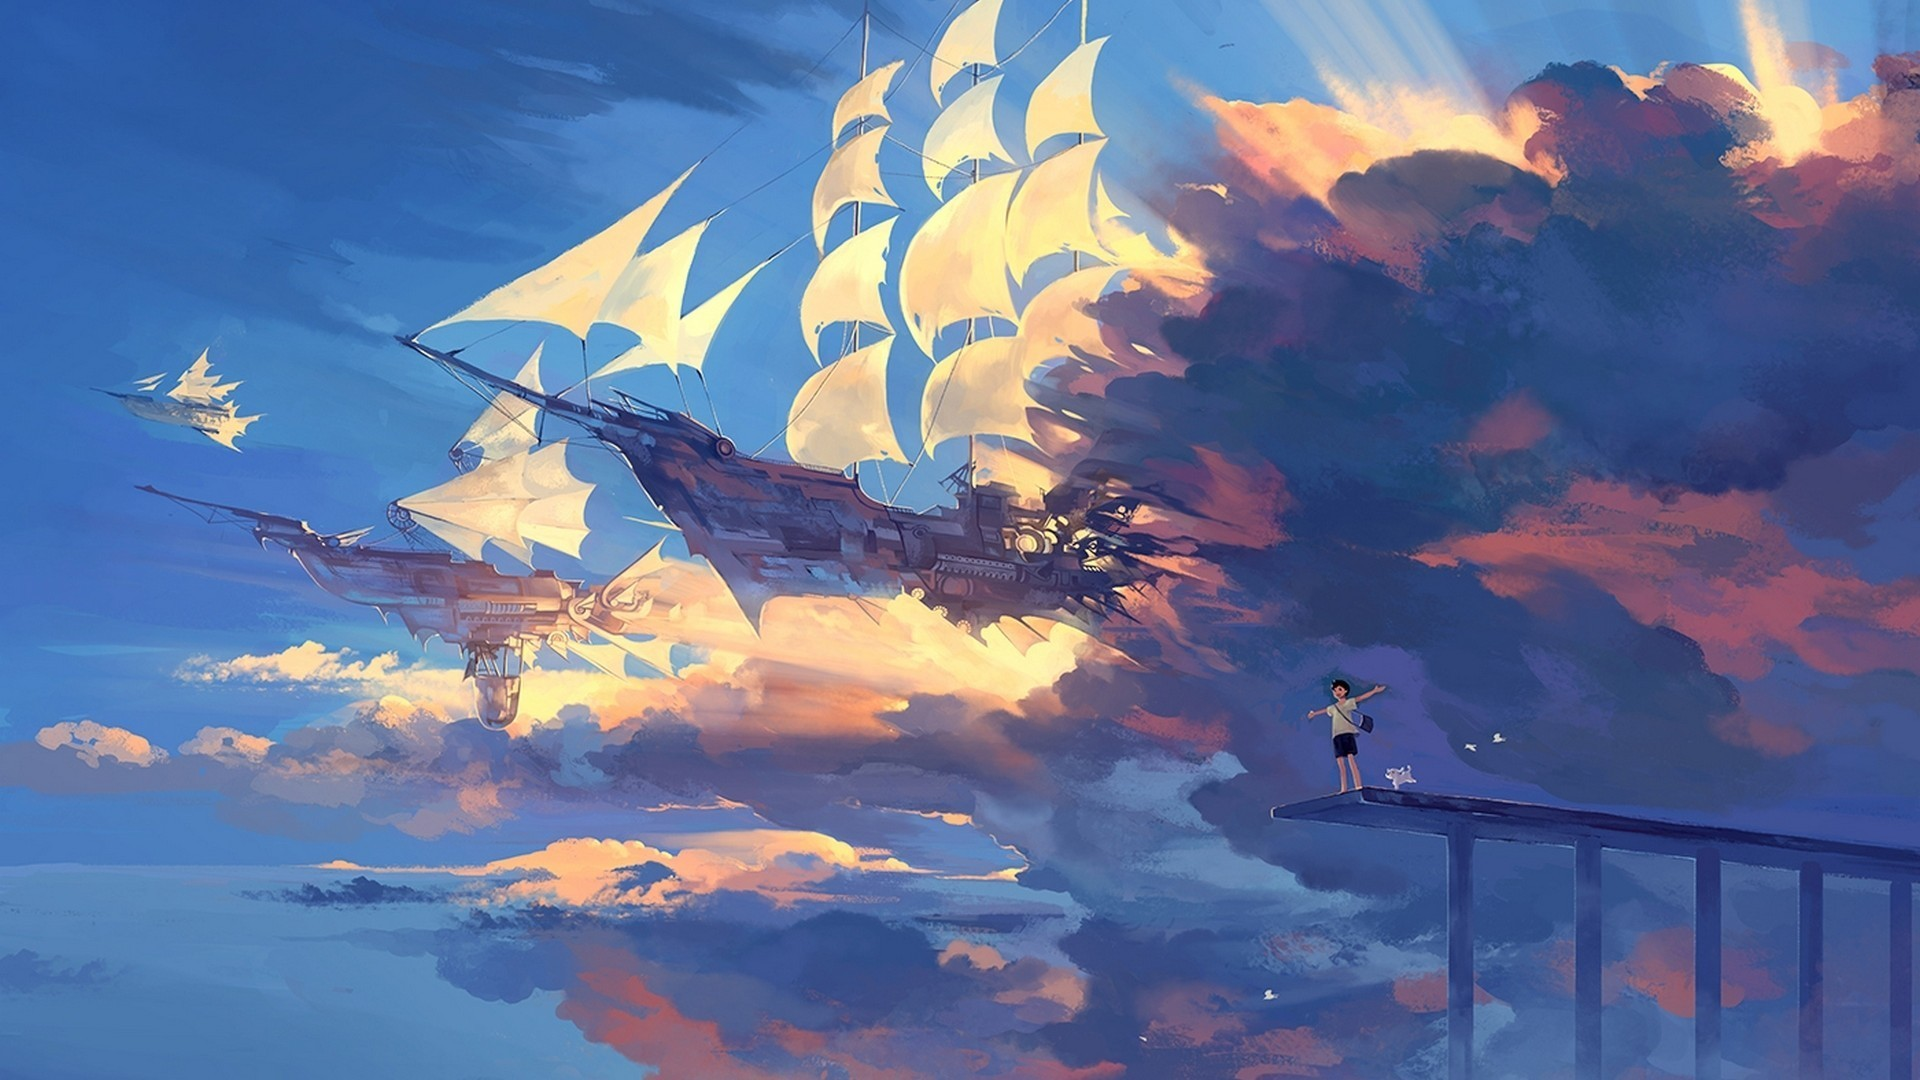 1920x1080  Wallpaper hanyijie, sky, scenery, ship, anime, art